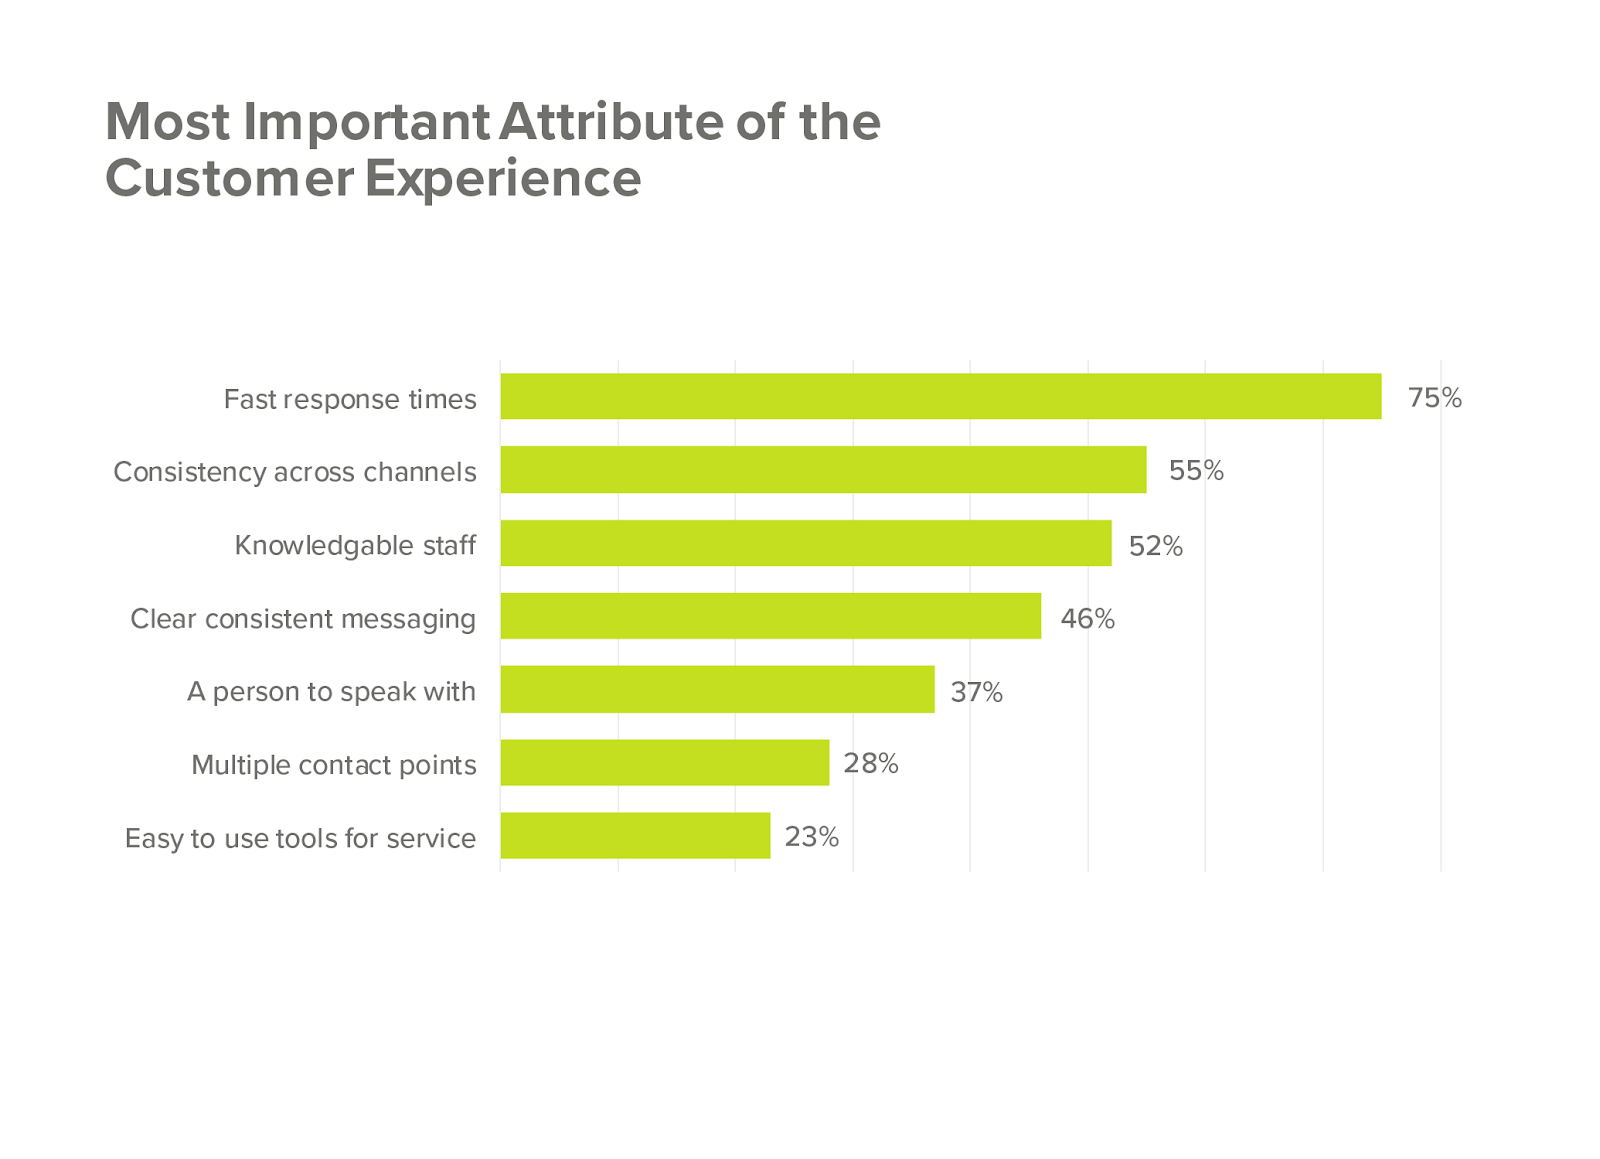 The most important attributes of the customer experience are fast response times and consistency